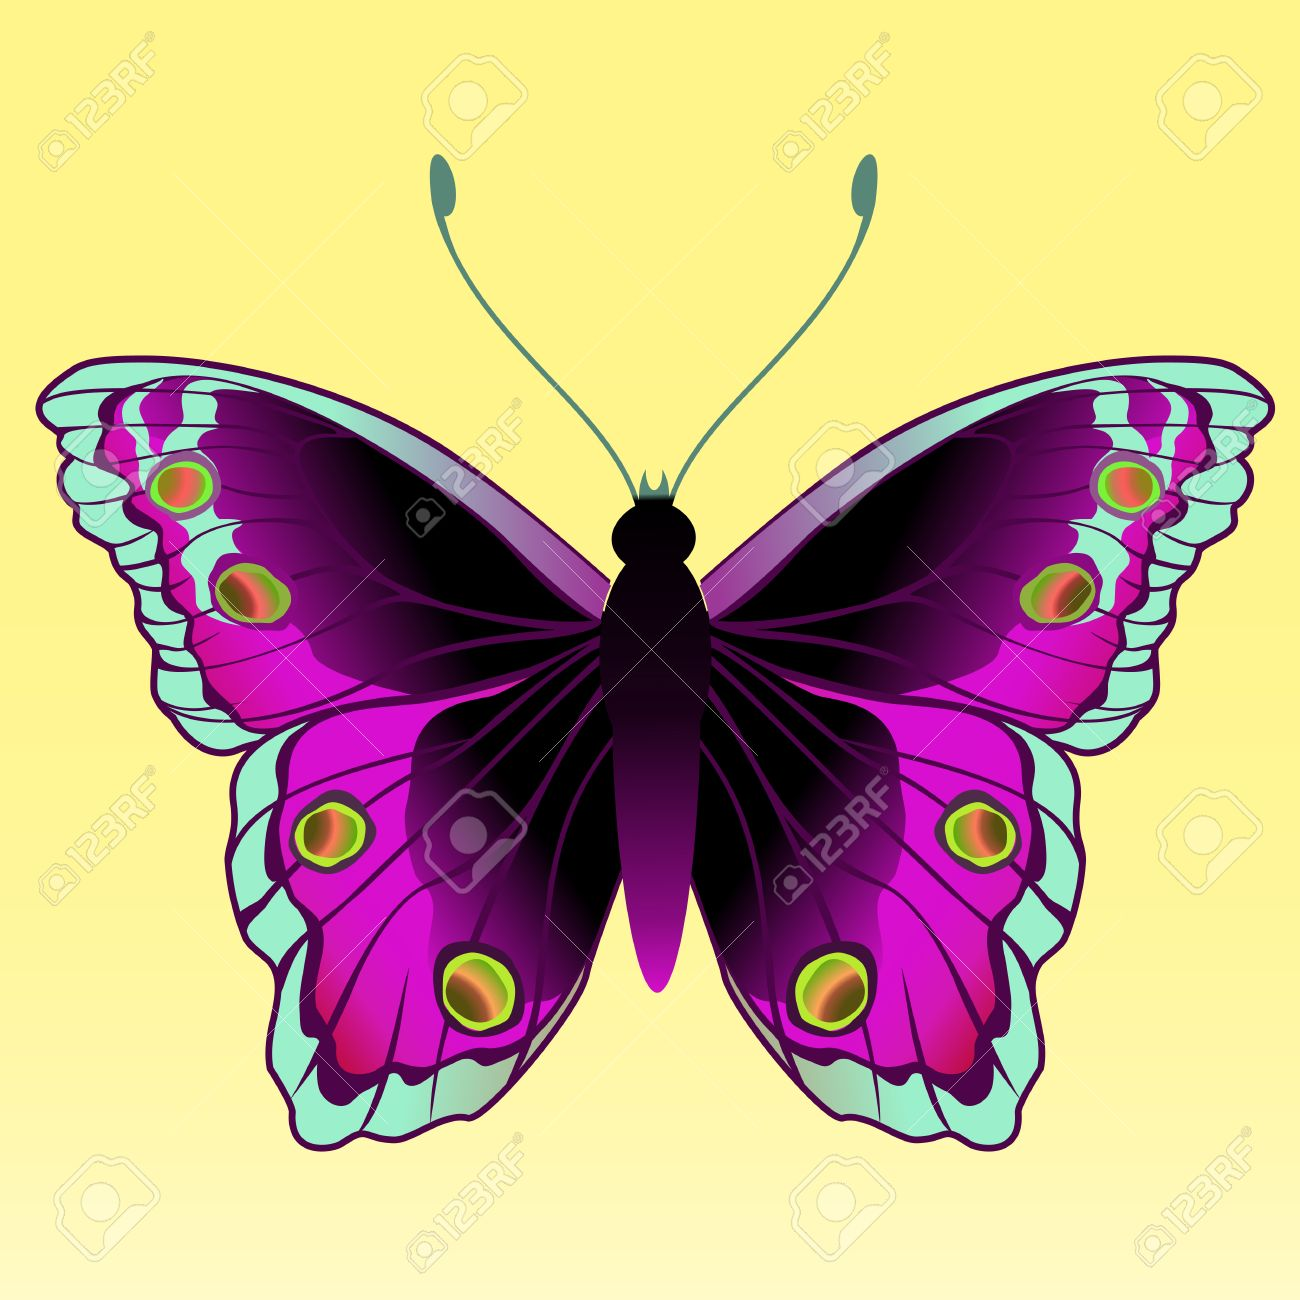 multi colored butterfly stock photos royalty free multi colored